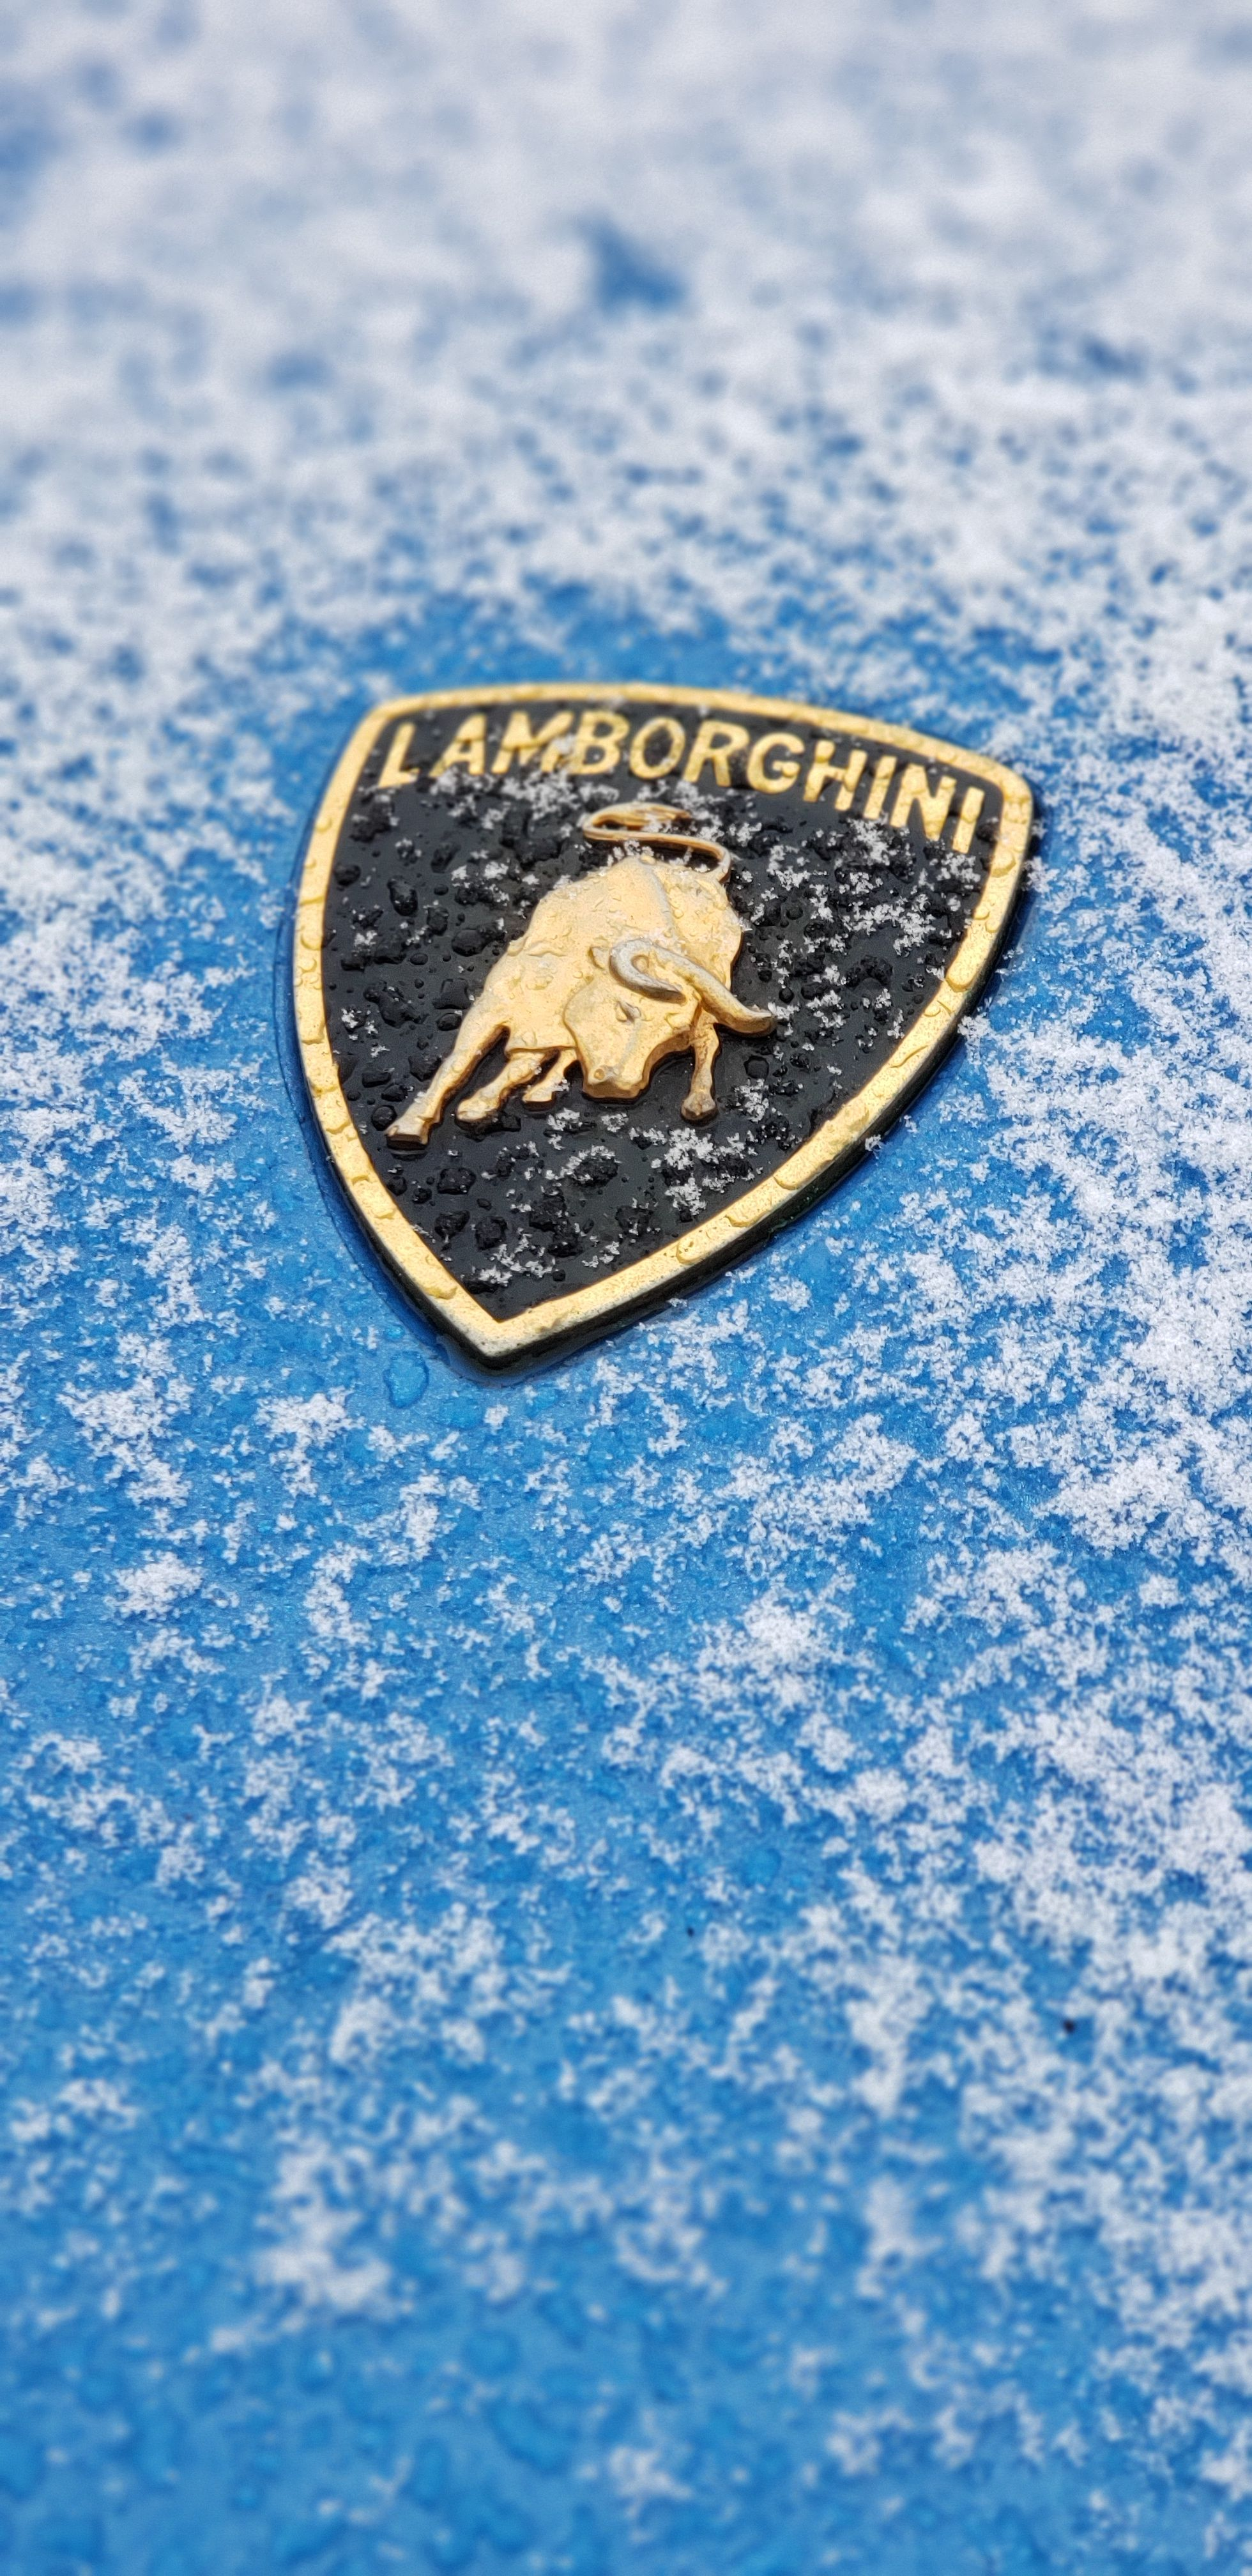 Snow Storm Came In Fast And It Was Time To Get The Lamborghini